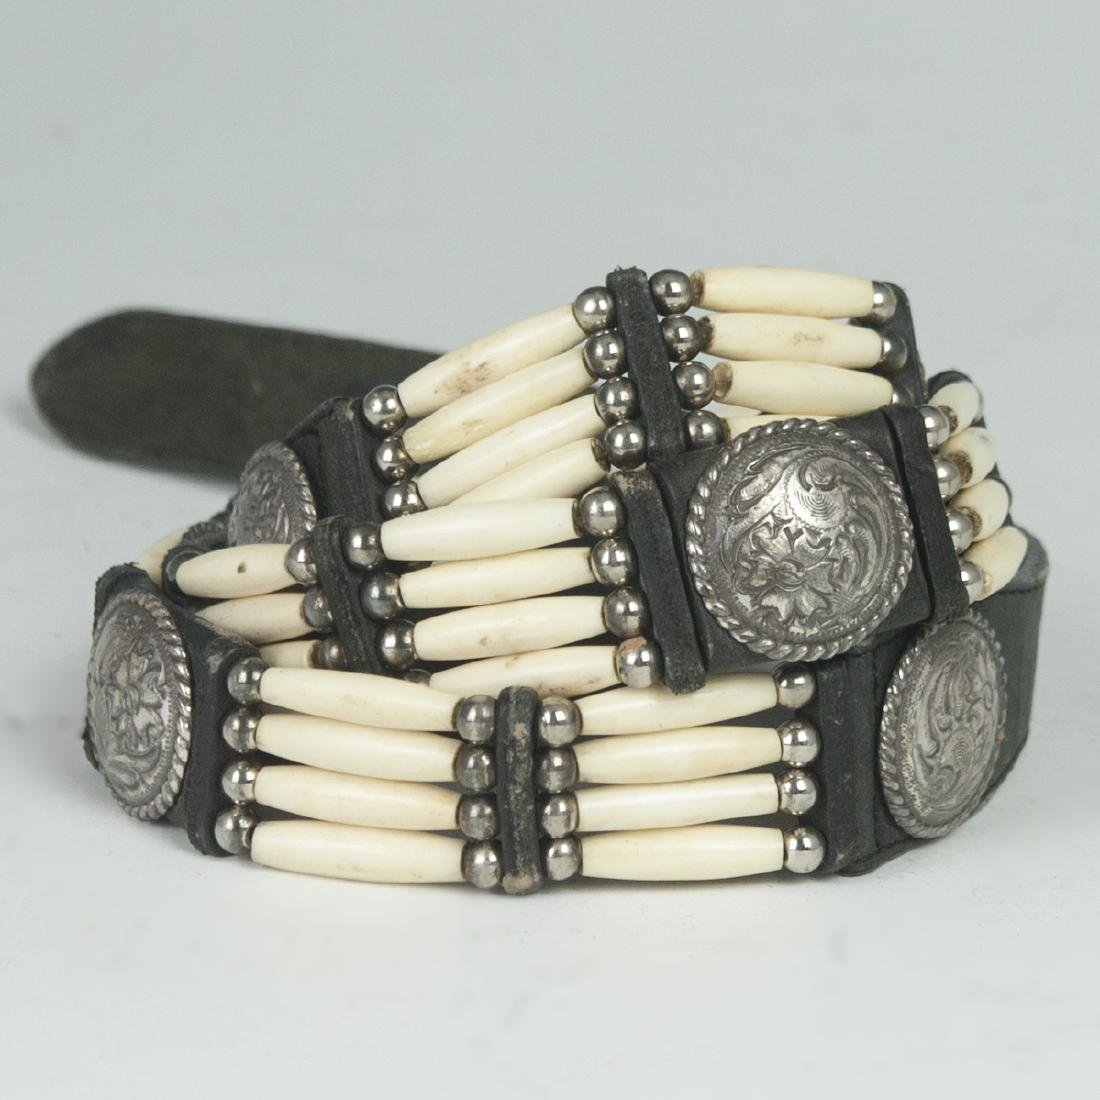 Navajo Style Silver Bone & Leather Belt